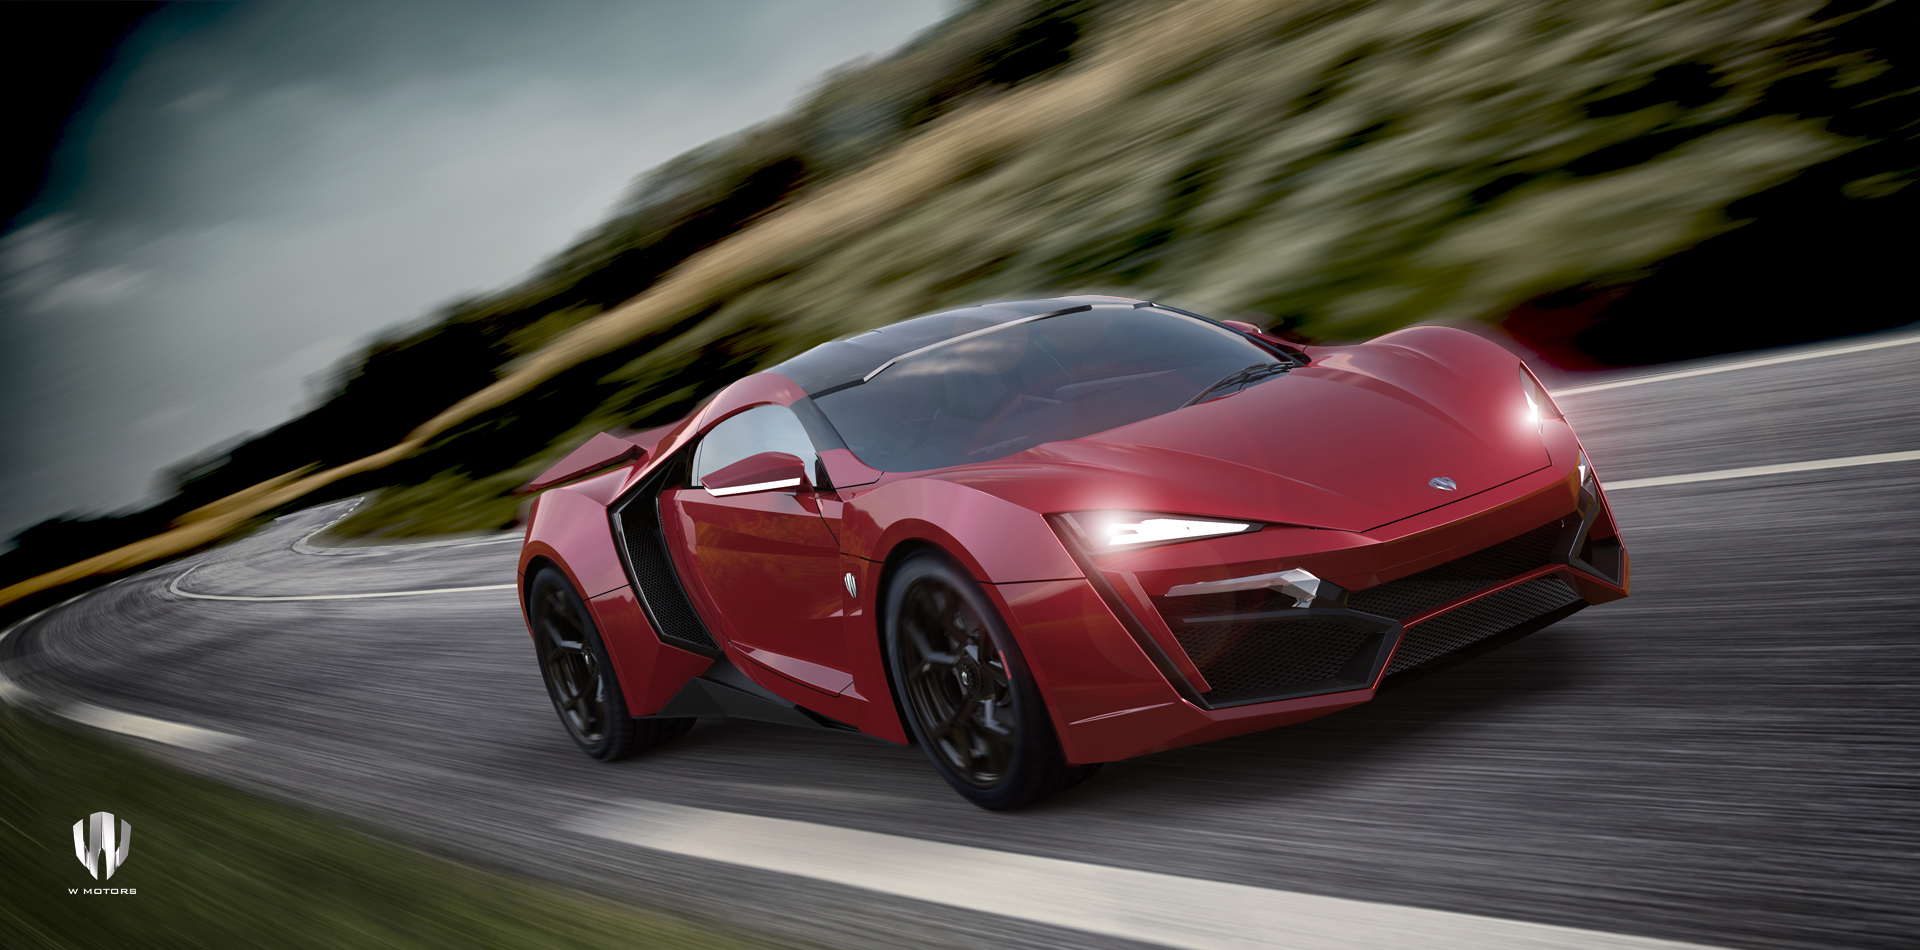 lykan hypersport ruby garnet les voitures. Black Bedroom Furniture Sets. Home Design Ideas